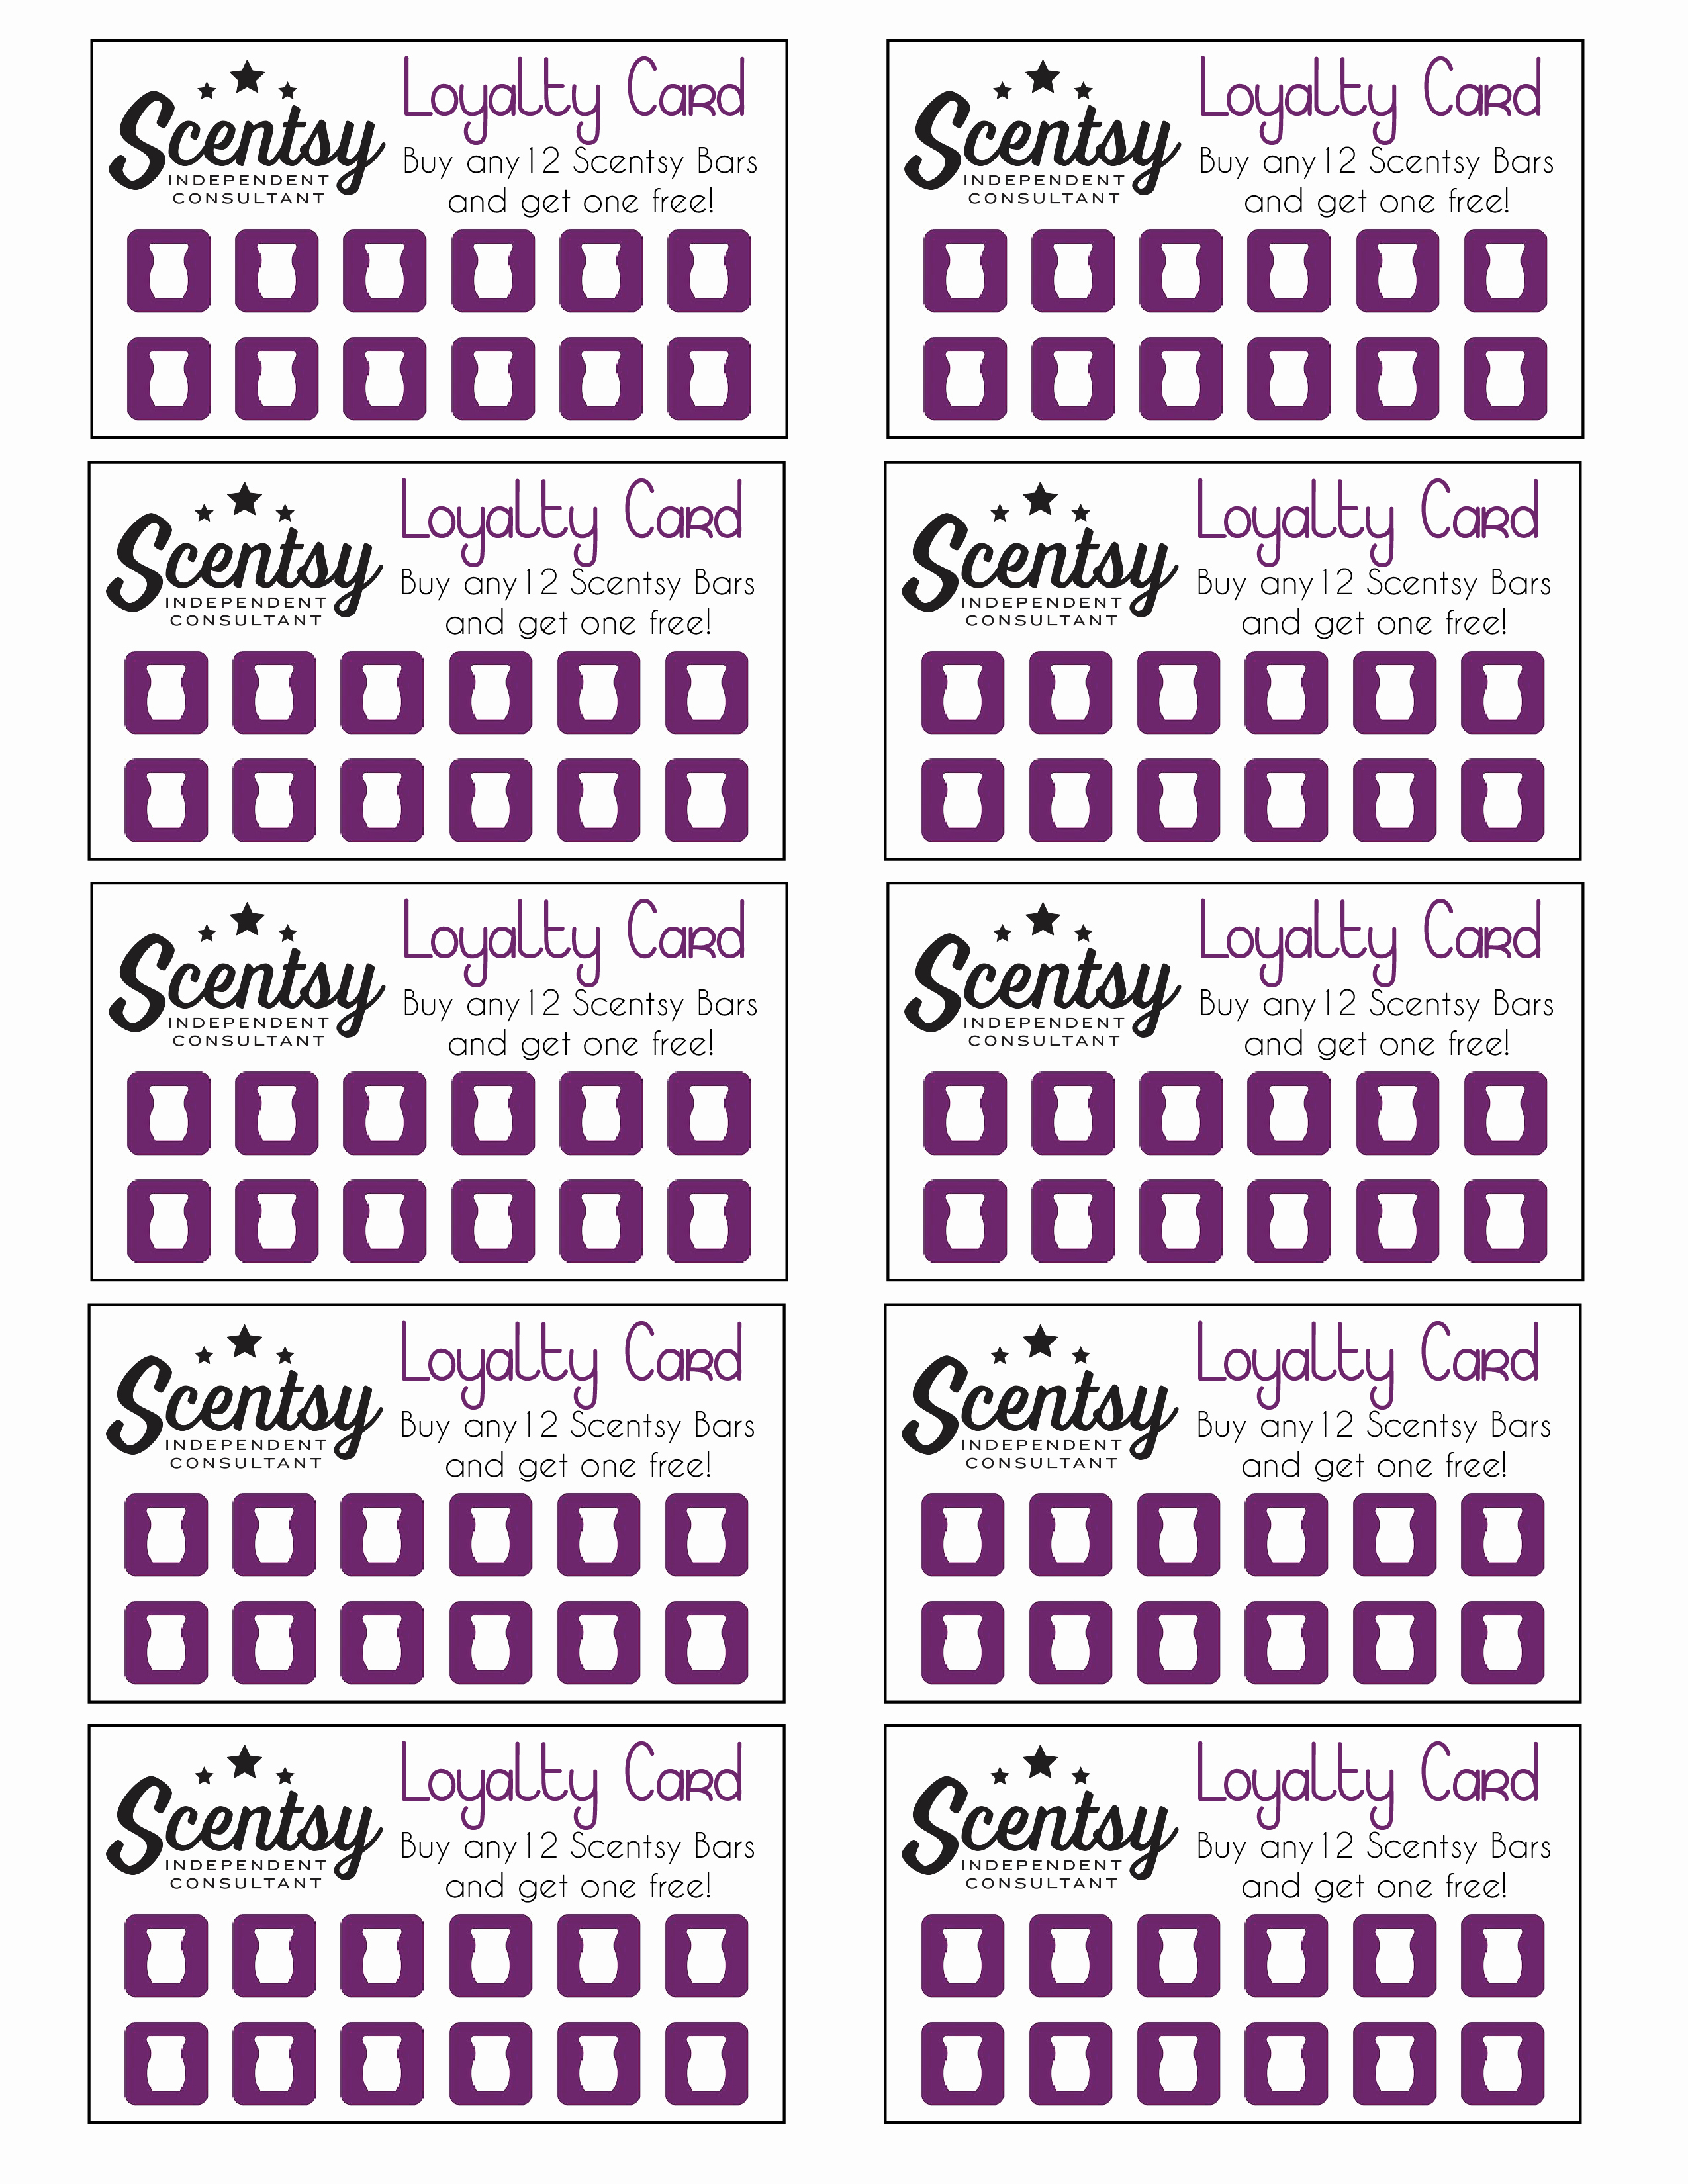 Scentsy Loyalty Card …